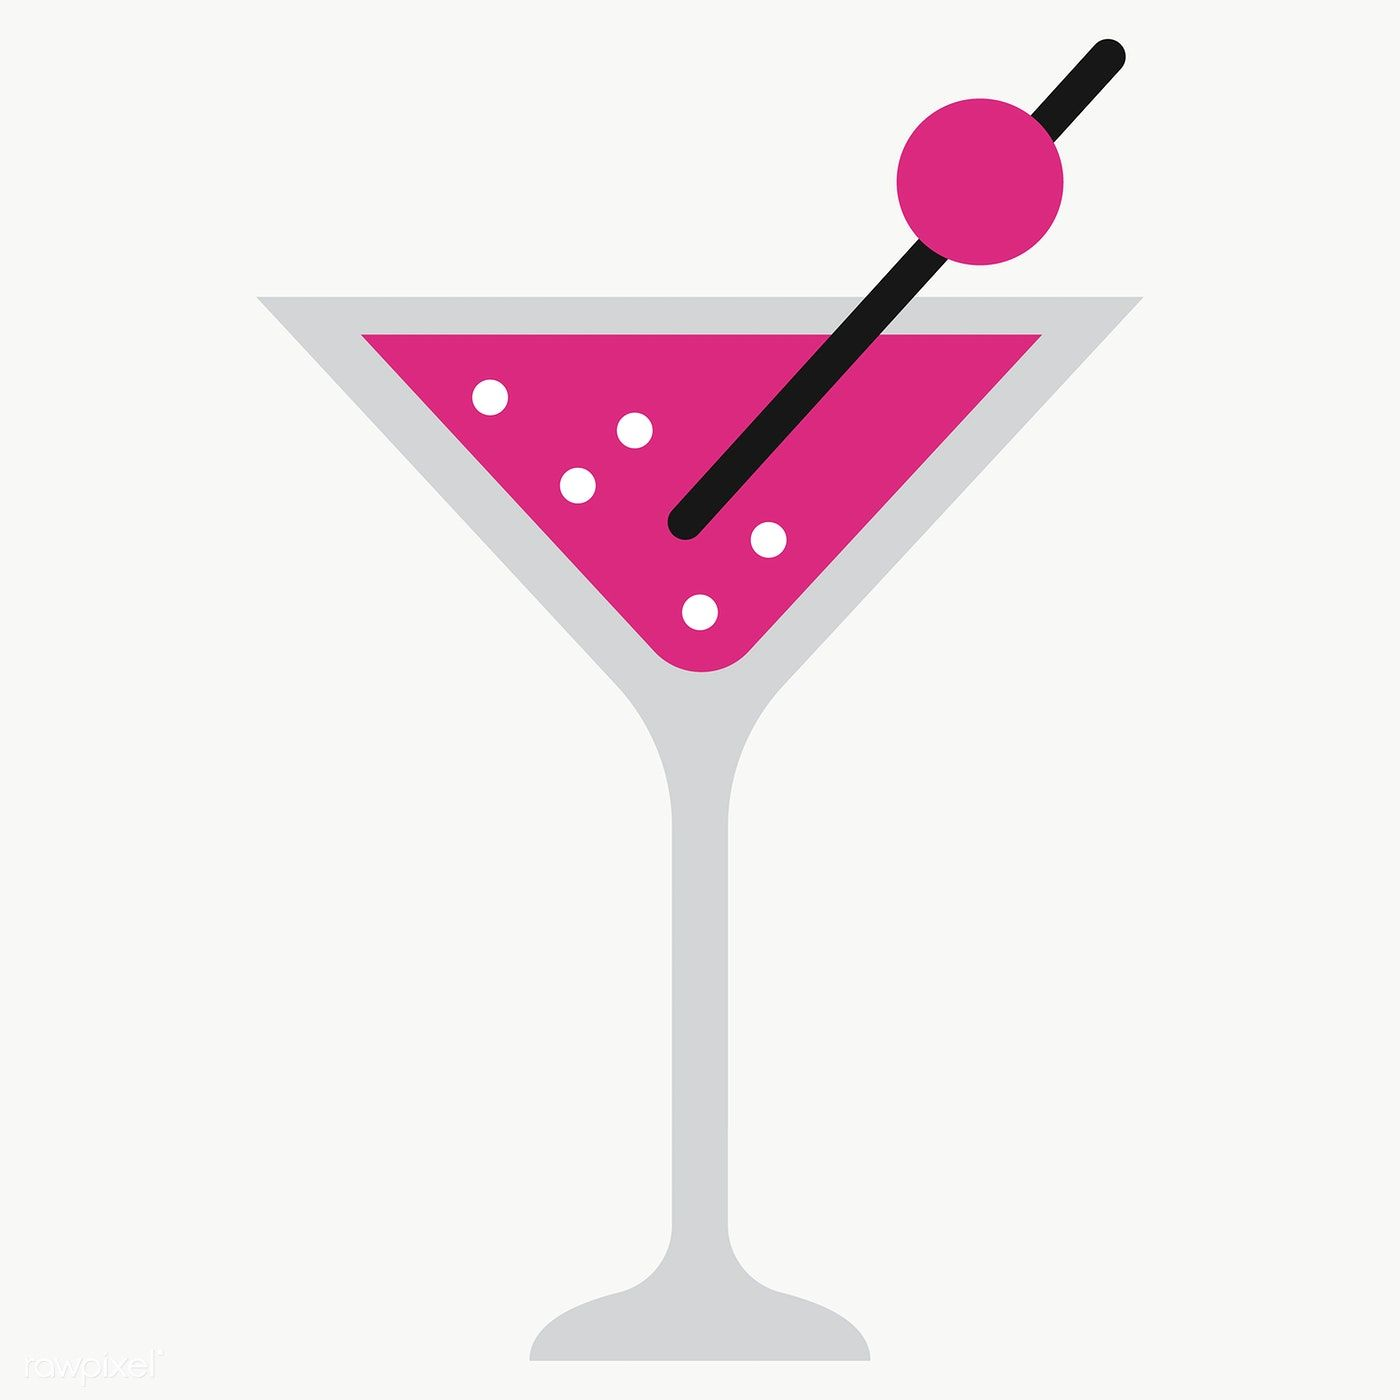 Pink Martini Drink Design Element Transparent Png Free Image By Rawpixel Com Chayanit Drinks Design Martinis Drinks Pink Martini